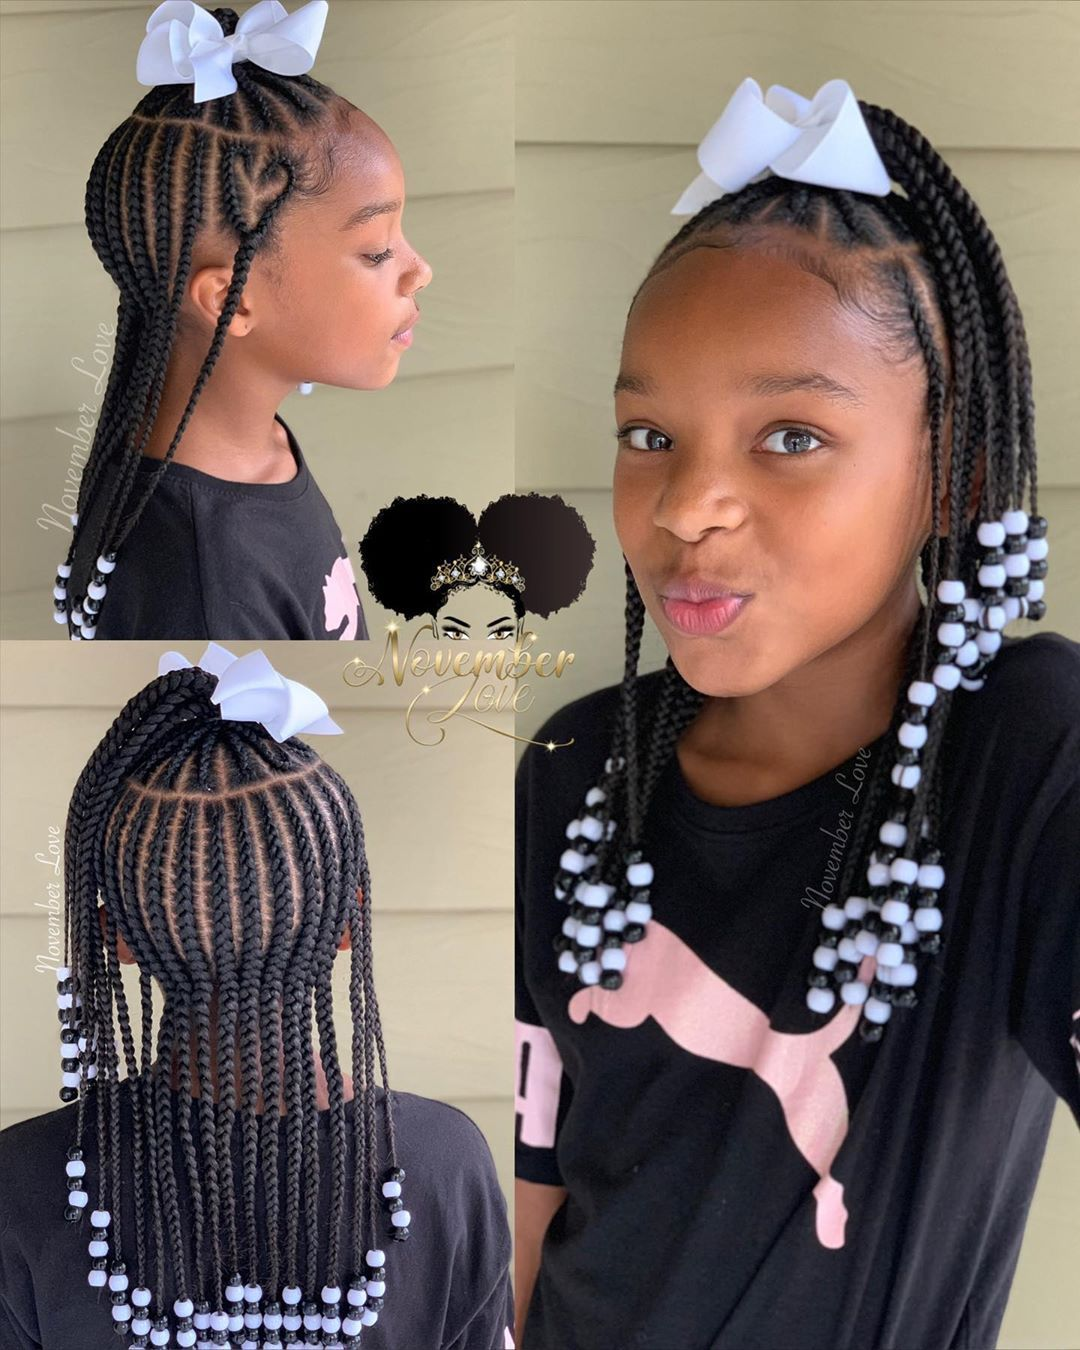 Children S Braids And Beads Booking Link In Bio Childrenhairstyles Braidart Childrensbraids Braids Kids Hairstyles Girls Braids For Kids Kid Braid Styles